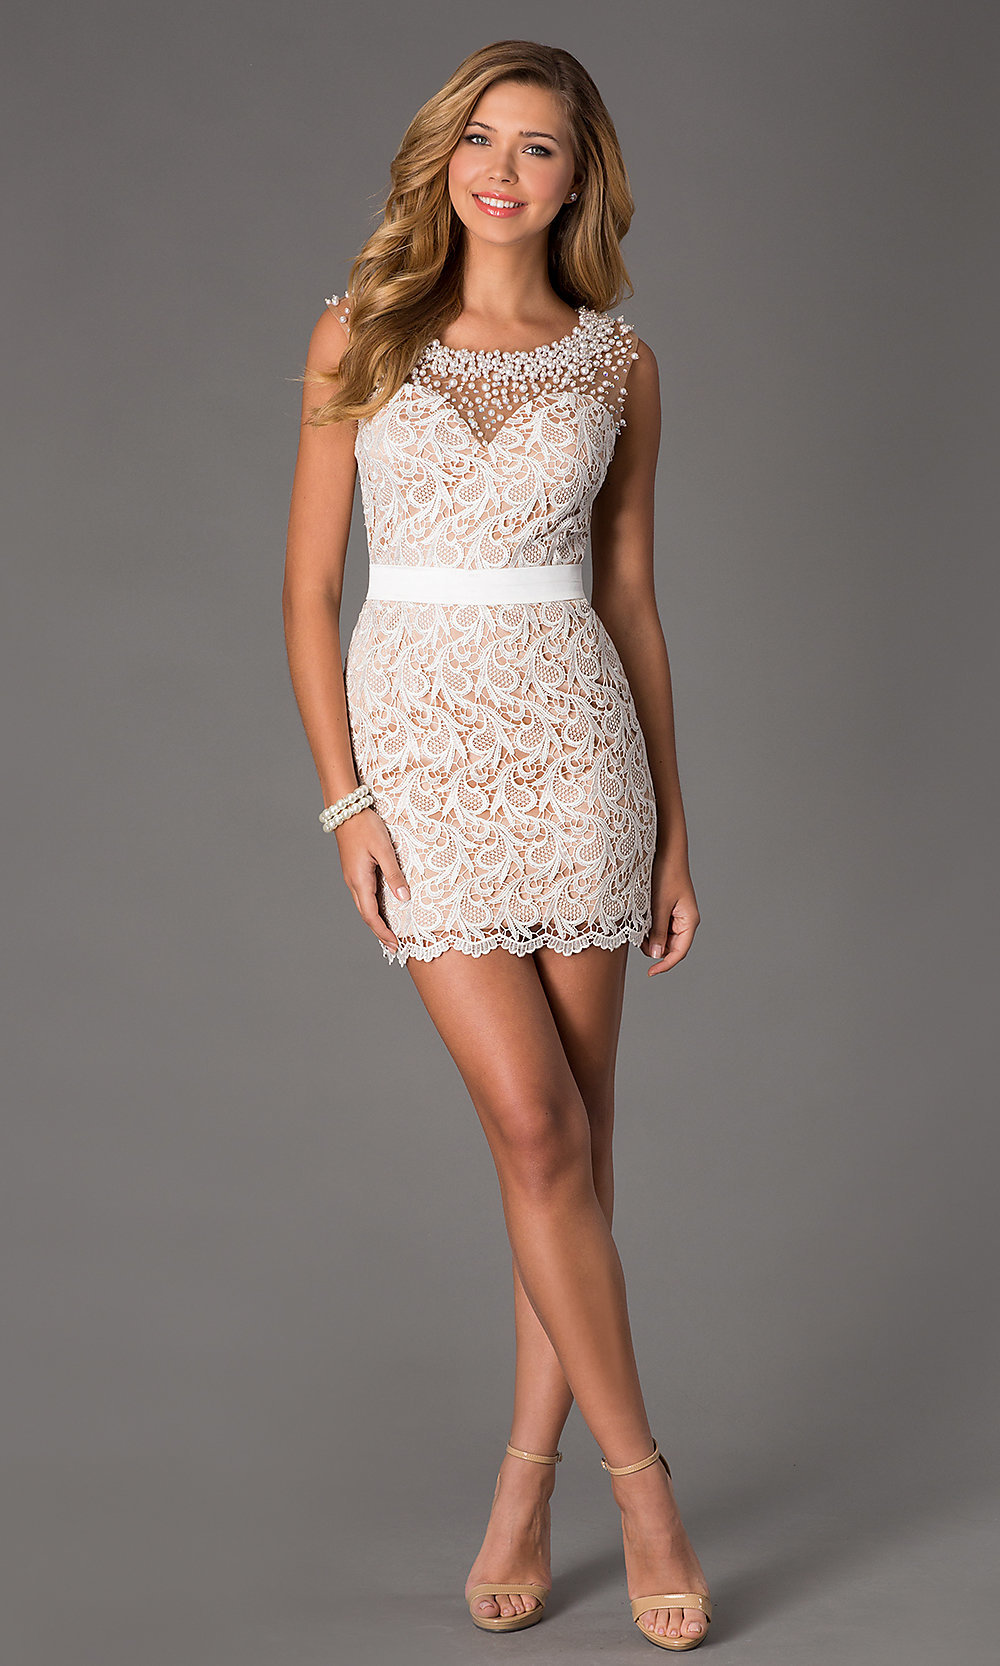 Sleeveless Lace Dress, Short Ivory Sleeveless Dress